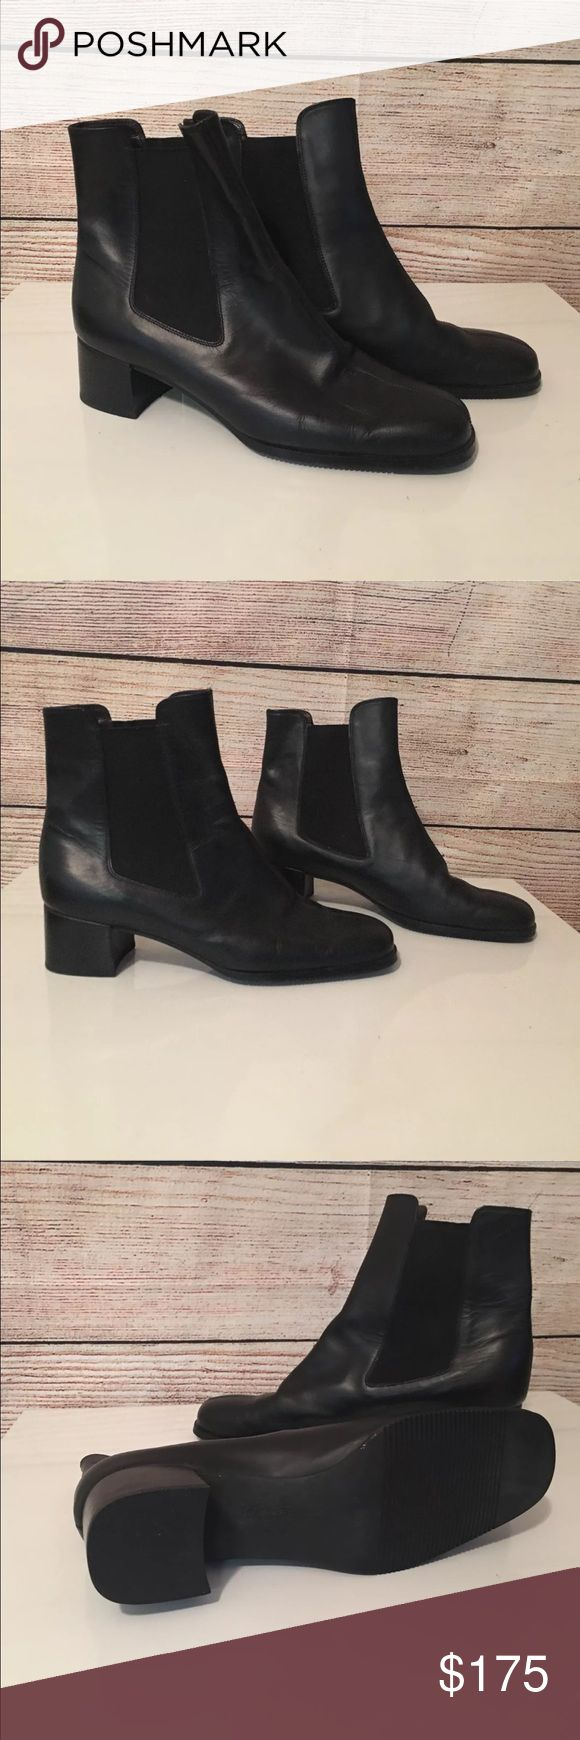 """Salvatore Ferragamo Black Chelsea Ankle Boots 9 M Salvatore Ferragamo Boutique Black Chelsea Ankle Boots Sz 9 M  These boots have not been worn outside the house - just tried on.  I said preowned just in case, but they are in excellent condition both inside and out.  Pull on style with elastic sides  Heel is 2""""  These retail new for $700 plus.  A great find! Salvatore Ferragamo Shoes Ankle Boots & Booties"""